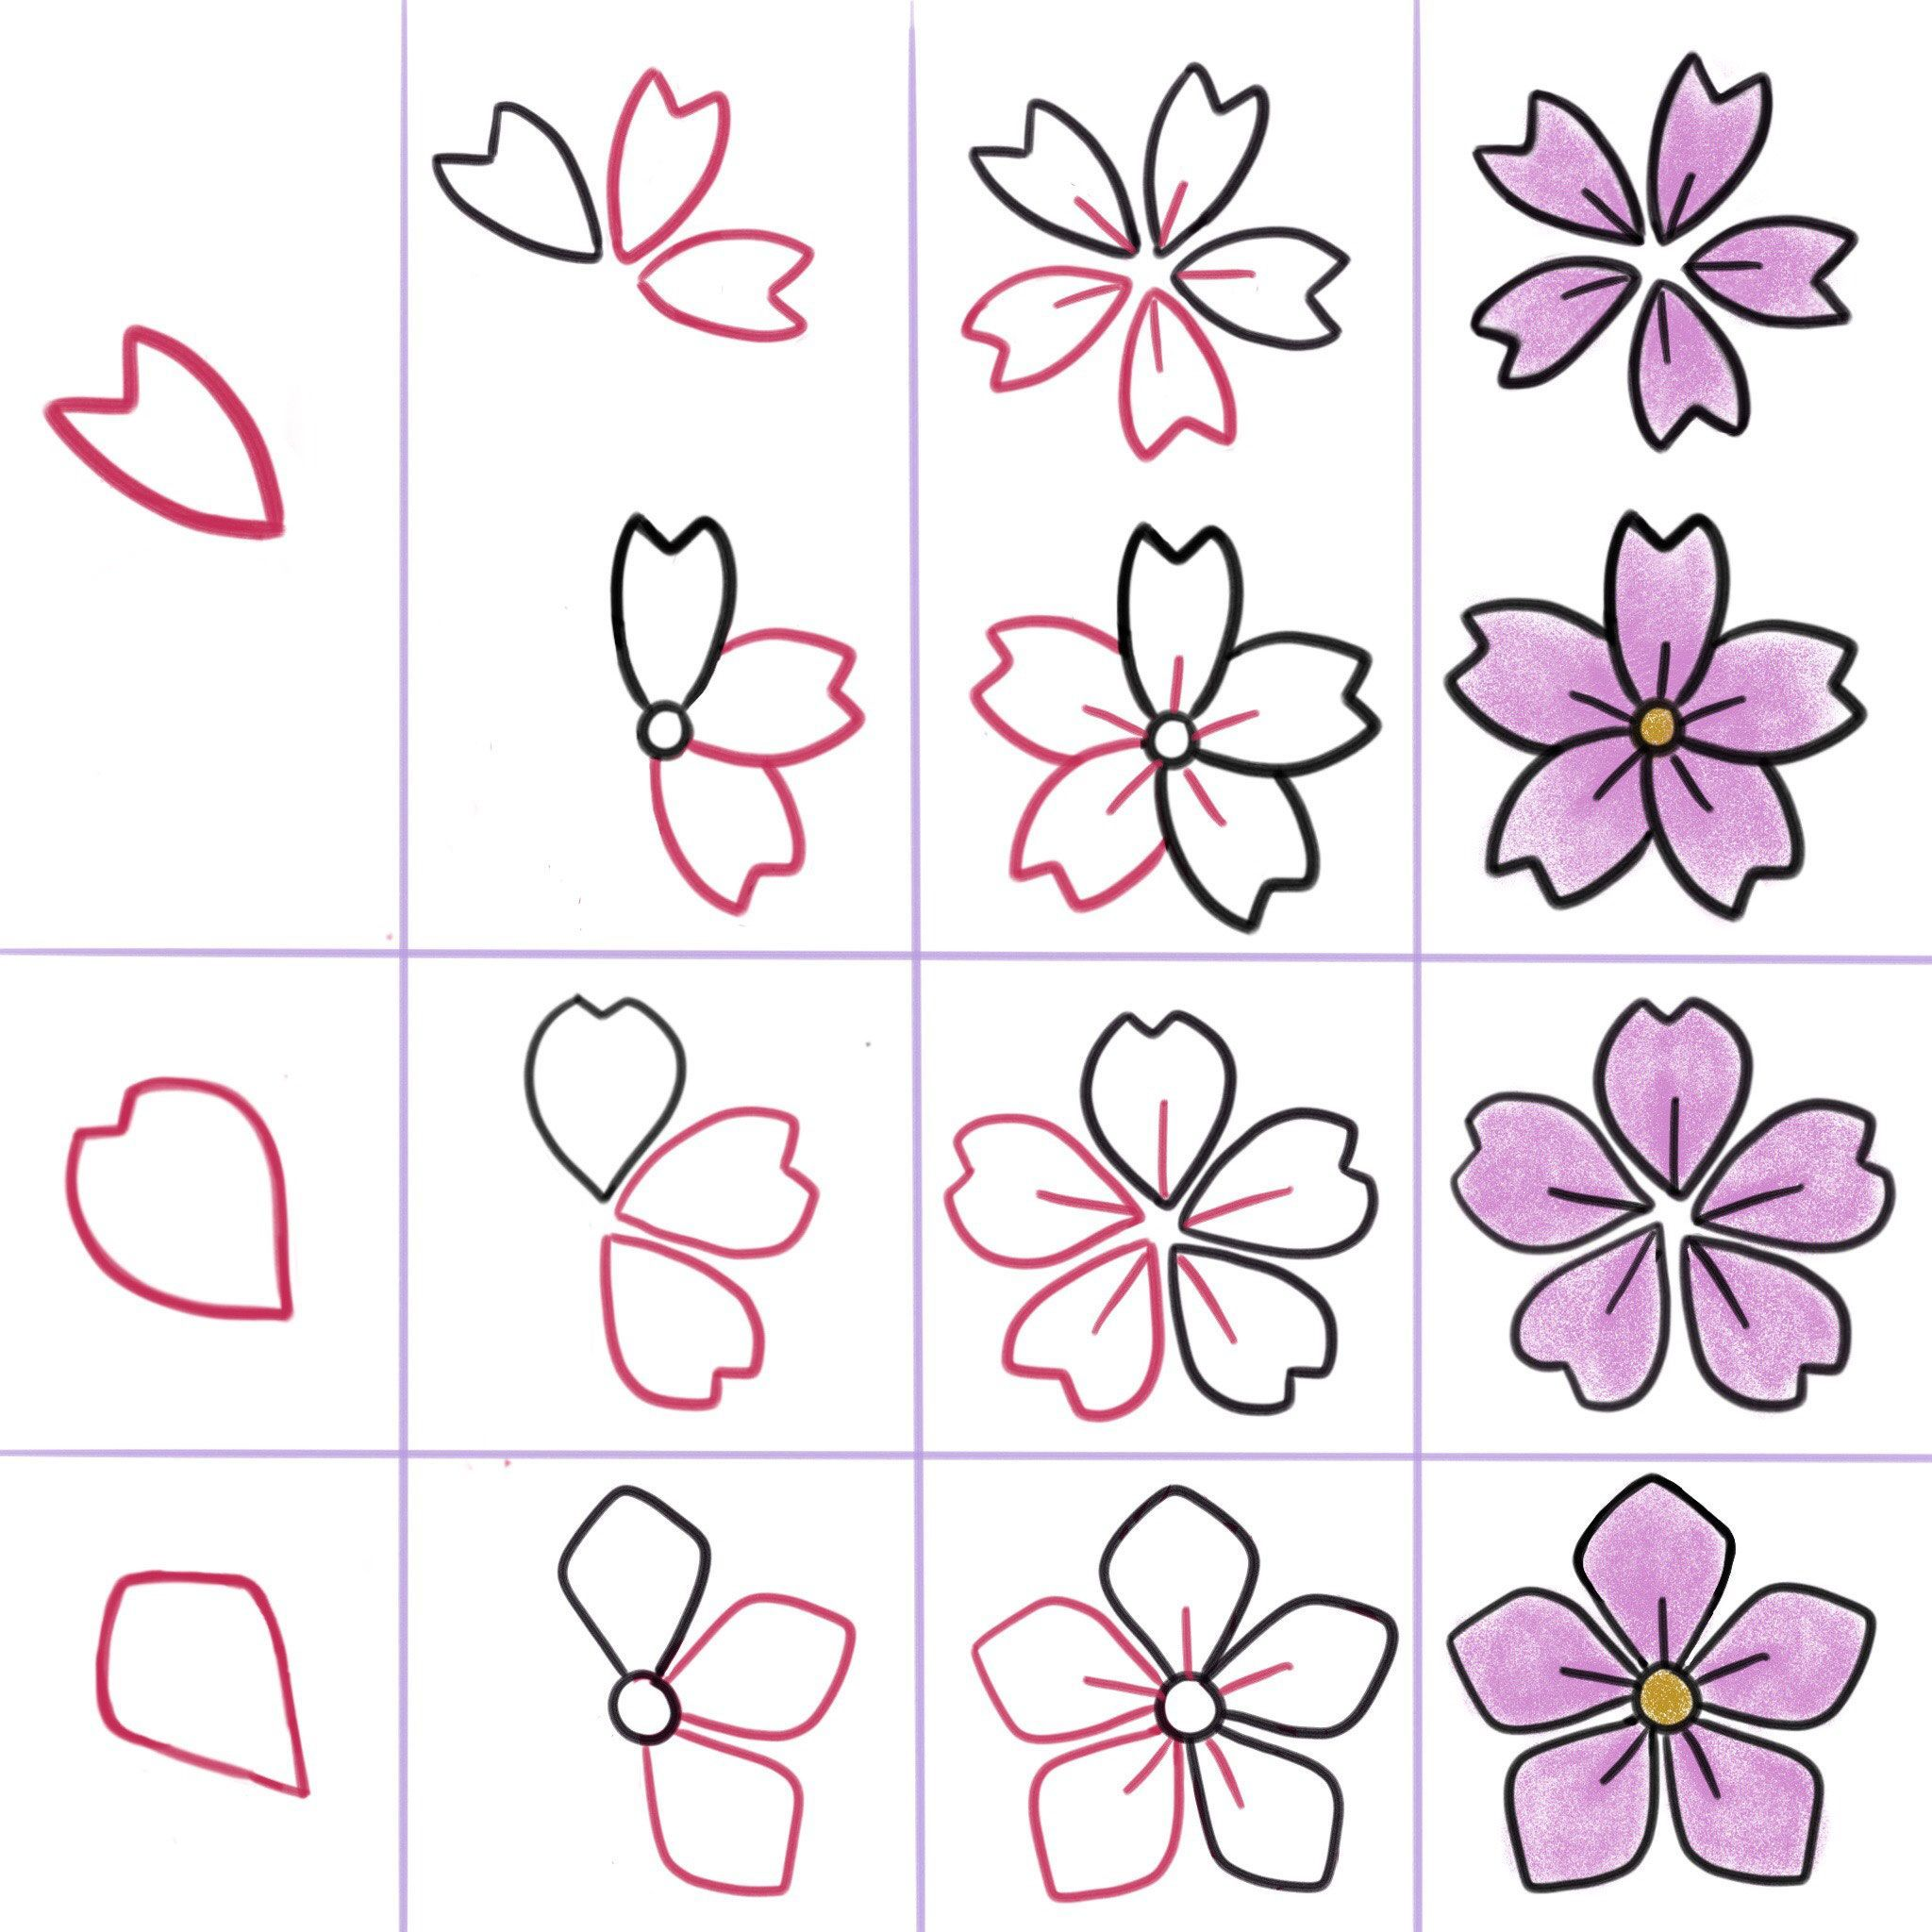 Pin By Amy Christensen On Doodle Patterns In 2021 Flower Doodles Flower Drawing Cherry Blossom Painting